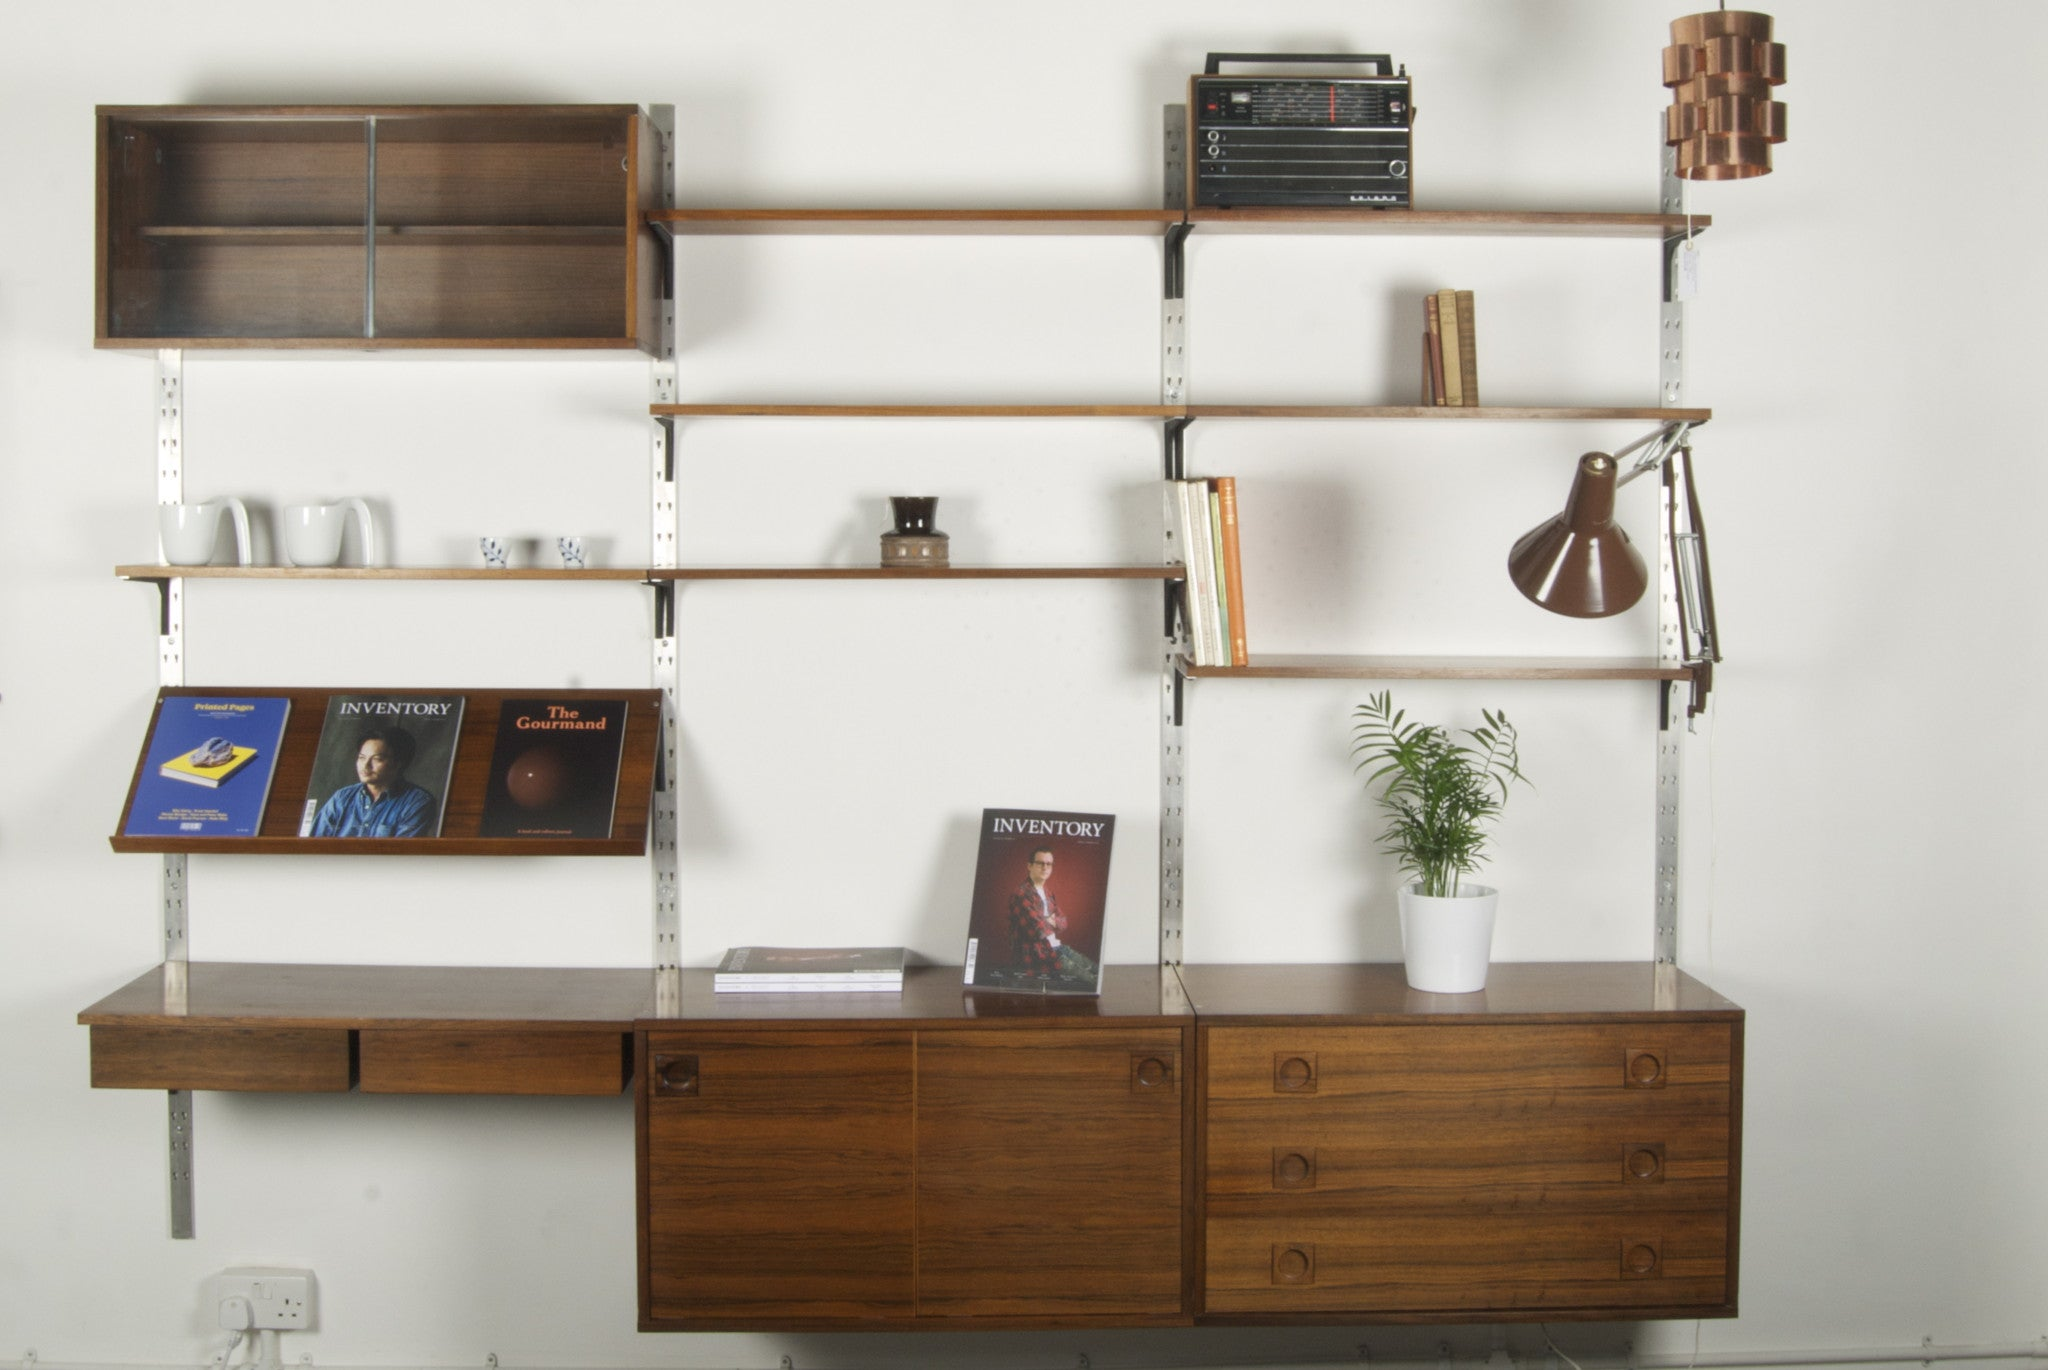 Modular shelving by Albert Hansen